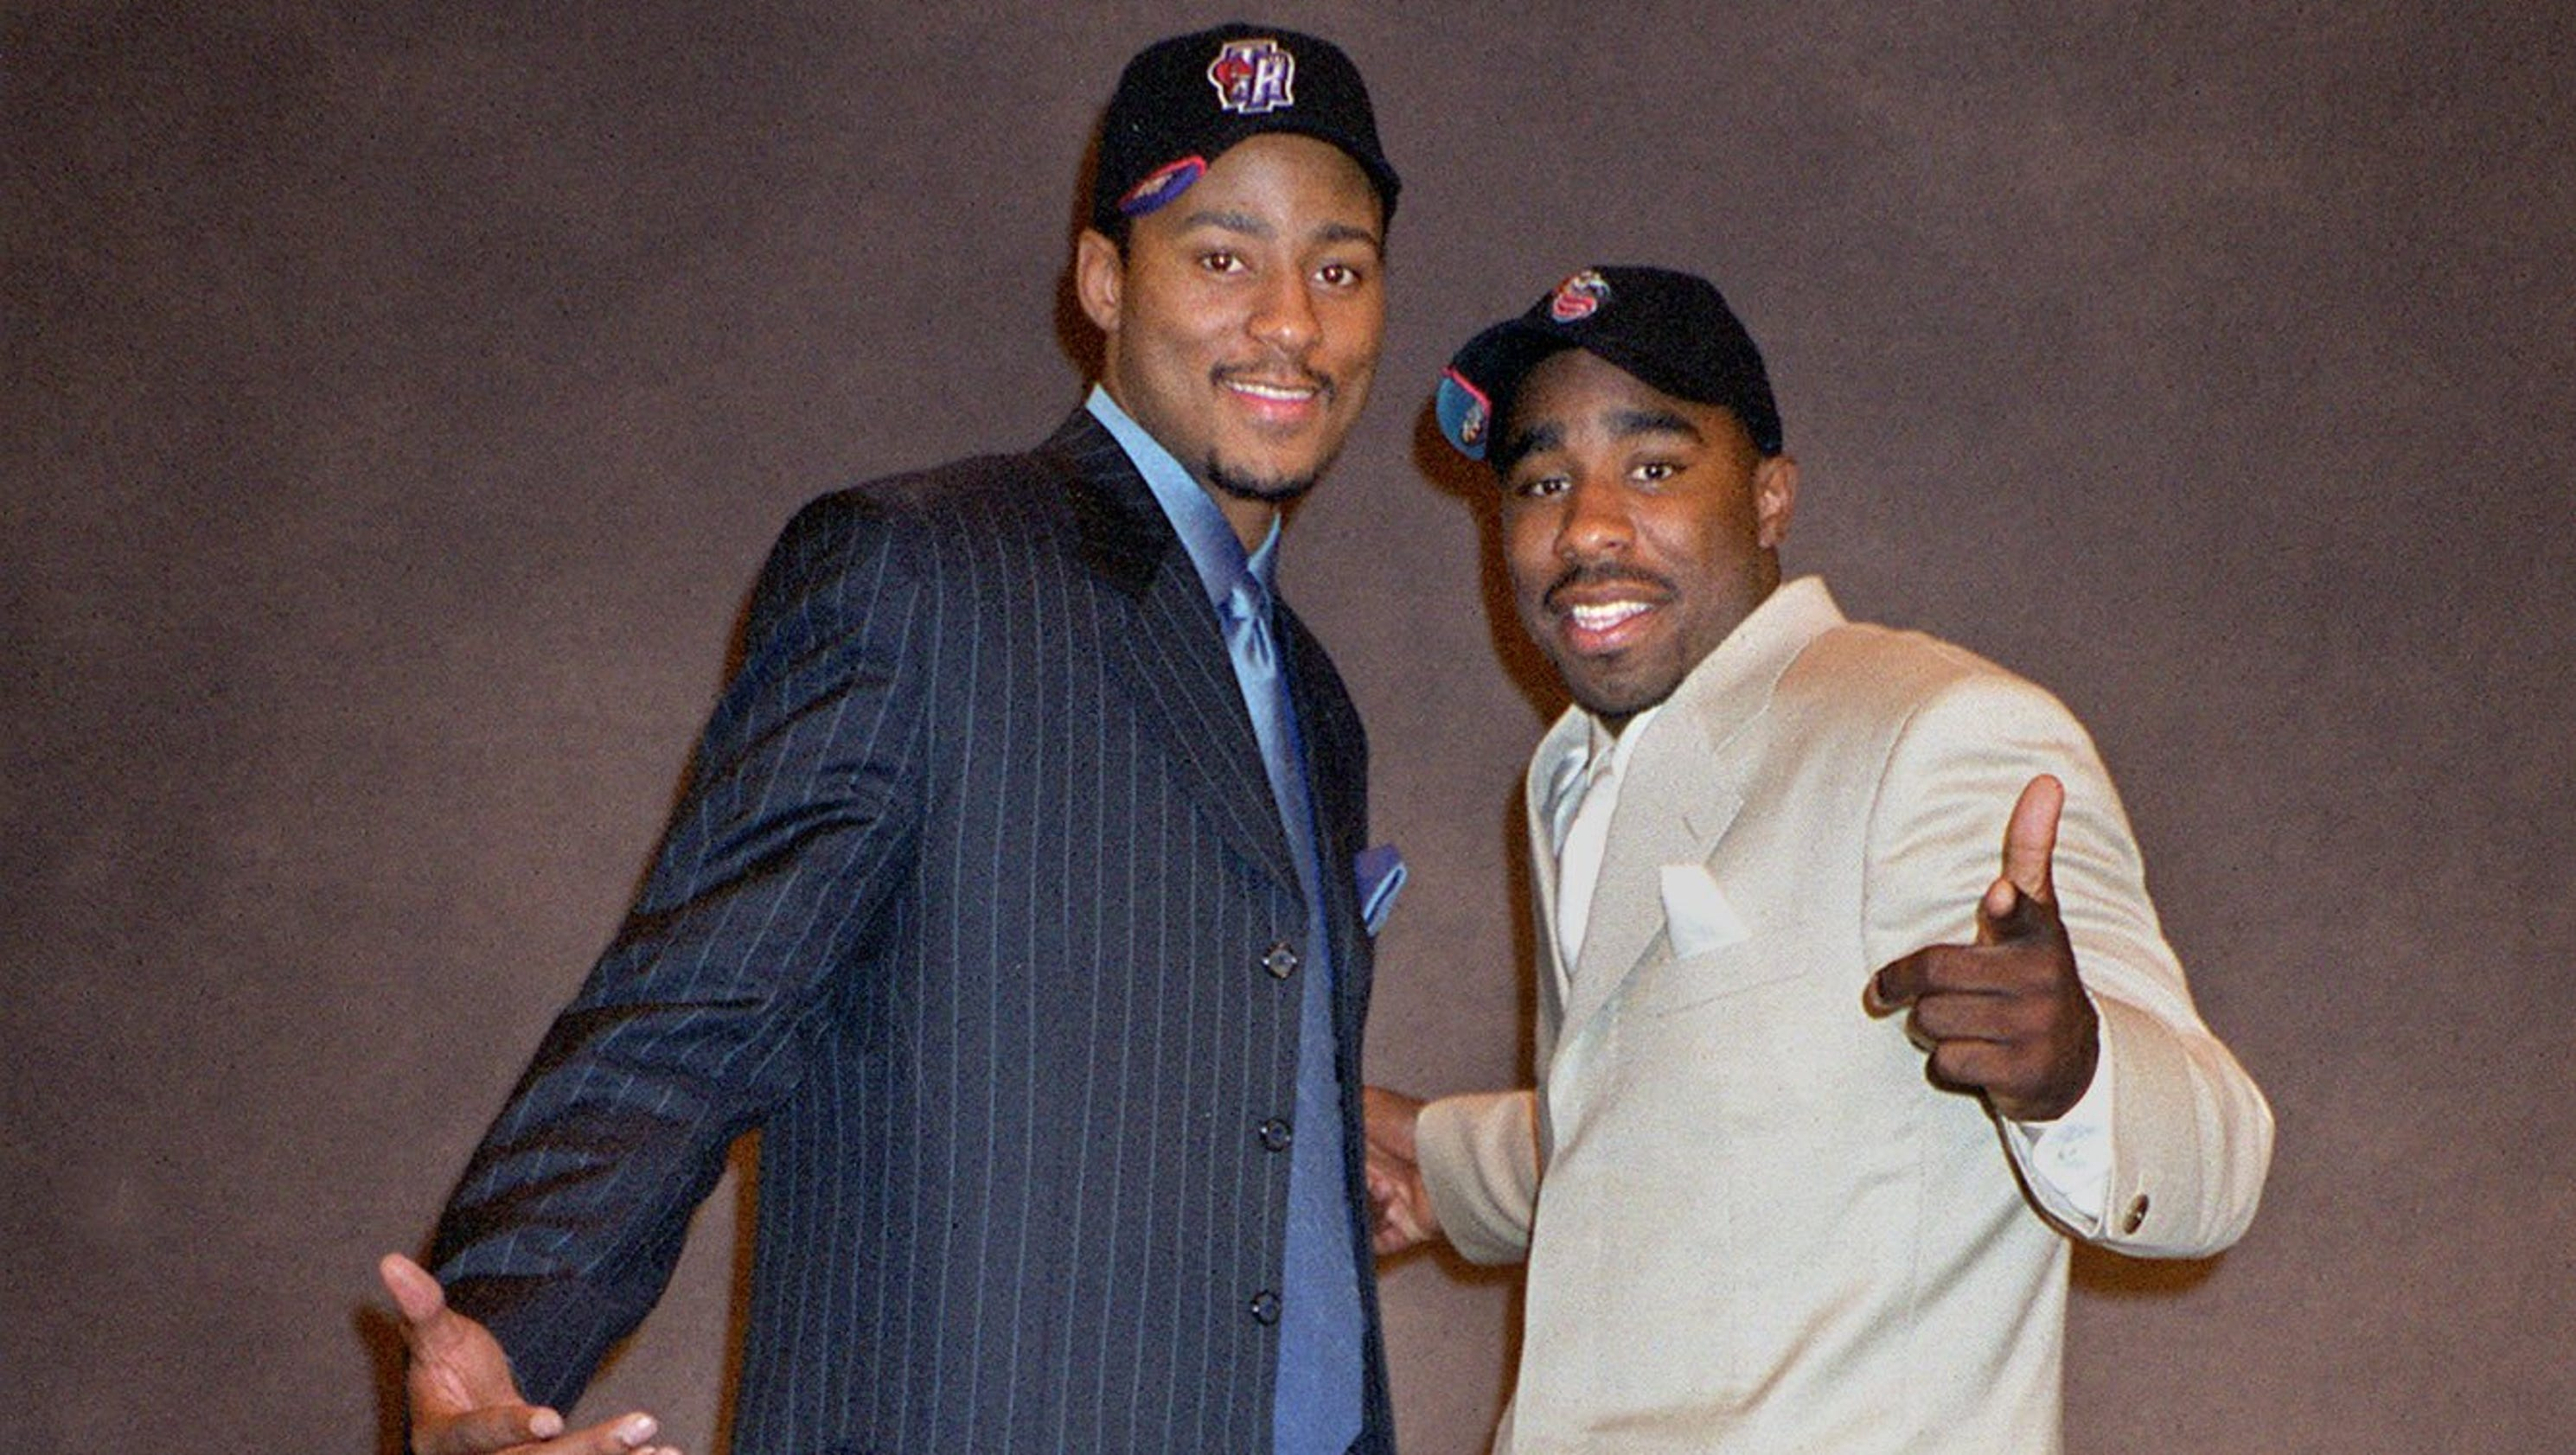 636650285947977500-nba-draft---cleaves-and-peterson